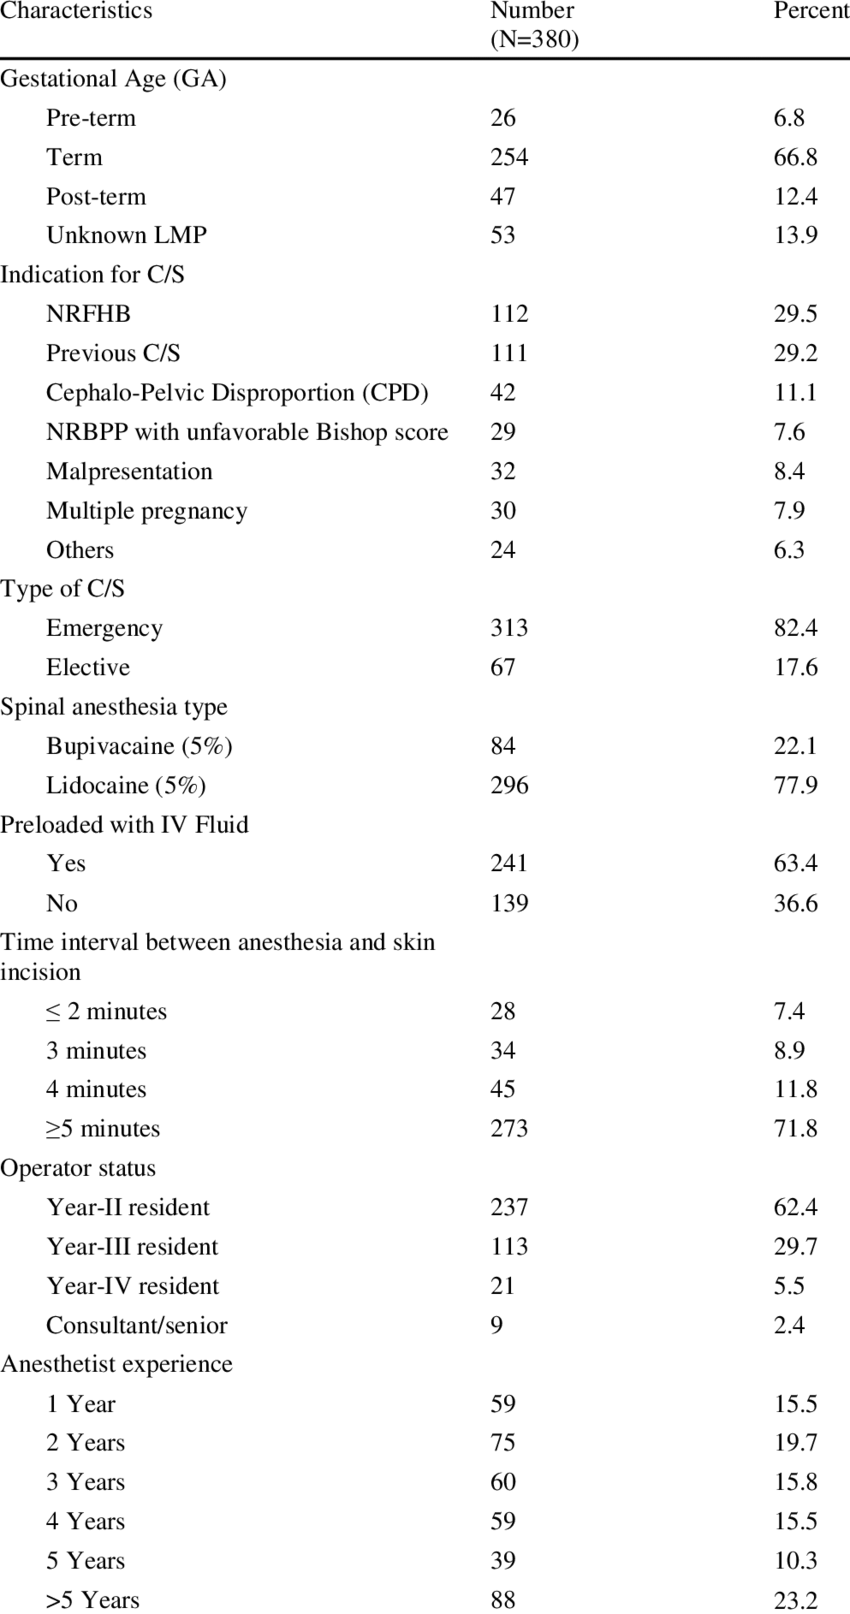 Obstetric characteristics of mothers who delivered by